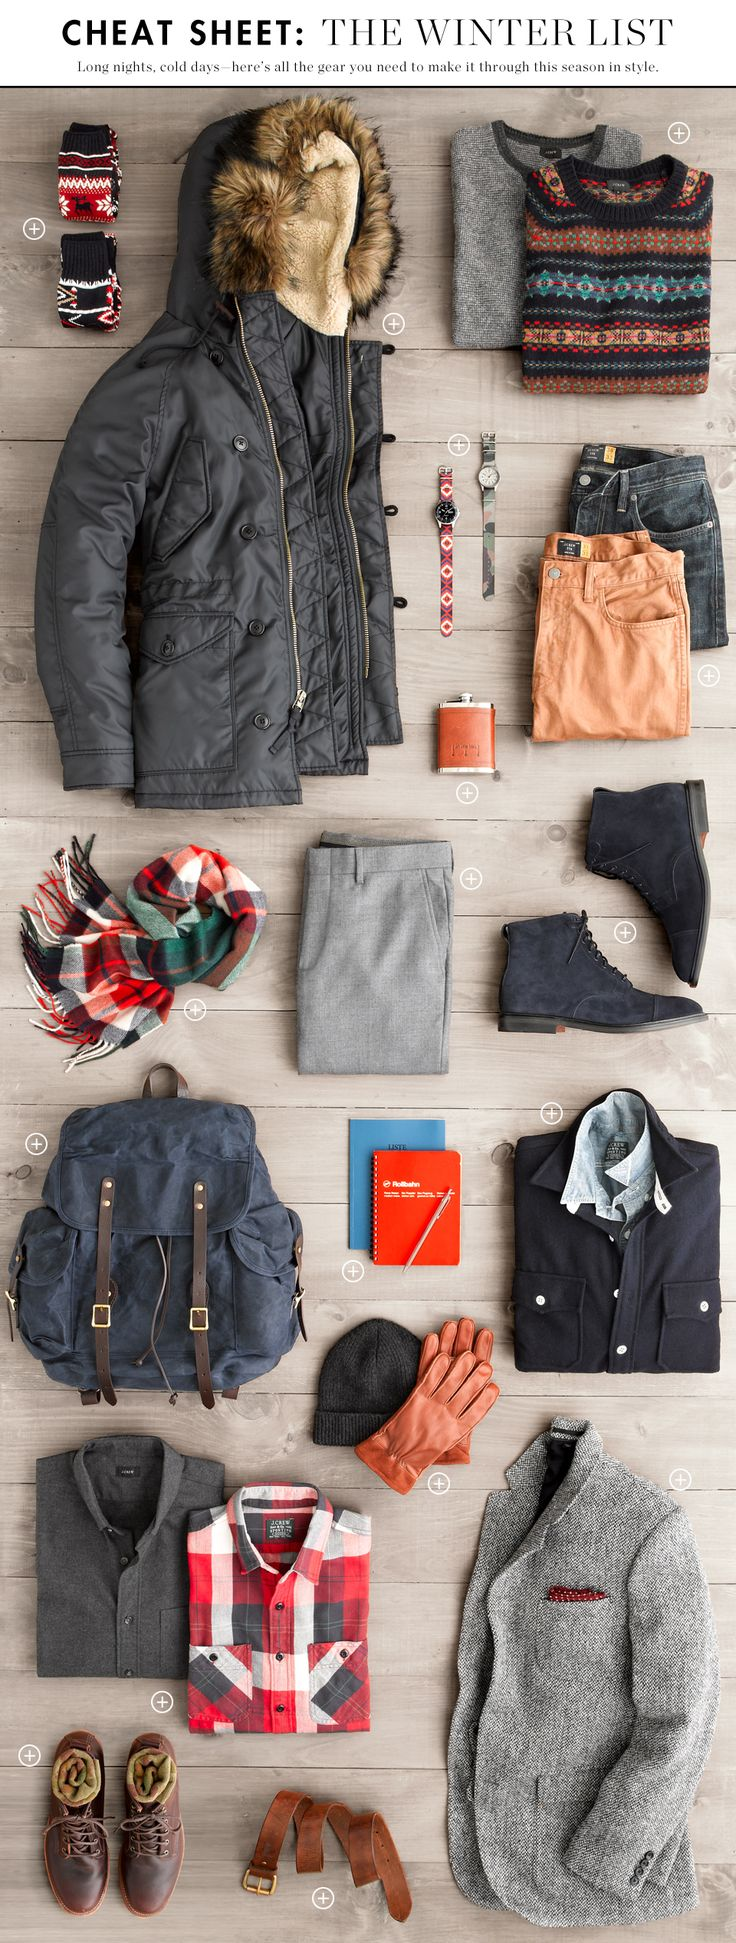 Winter Cheat Sheet - from J Crew